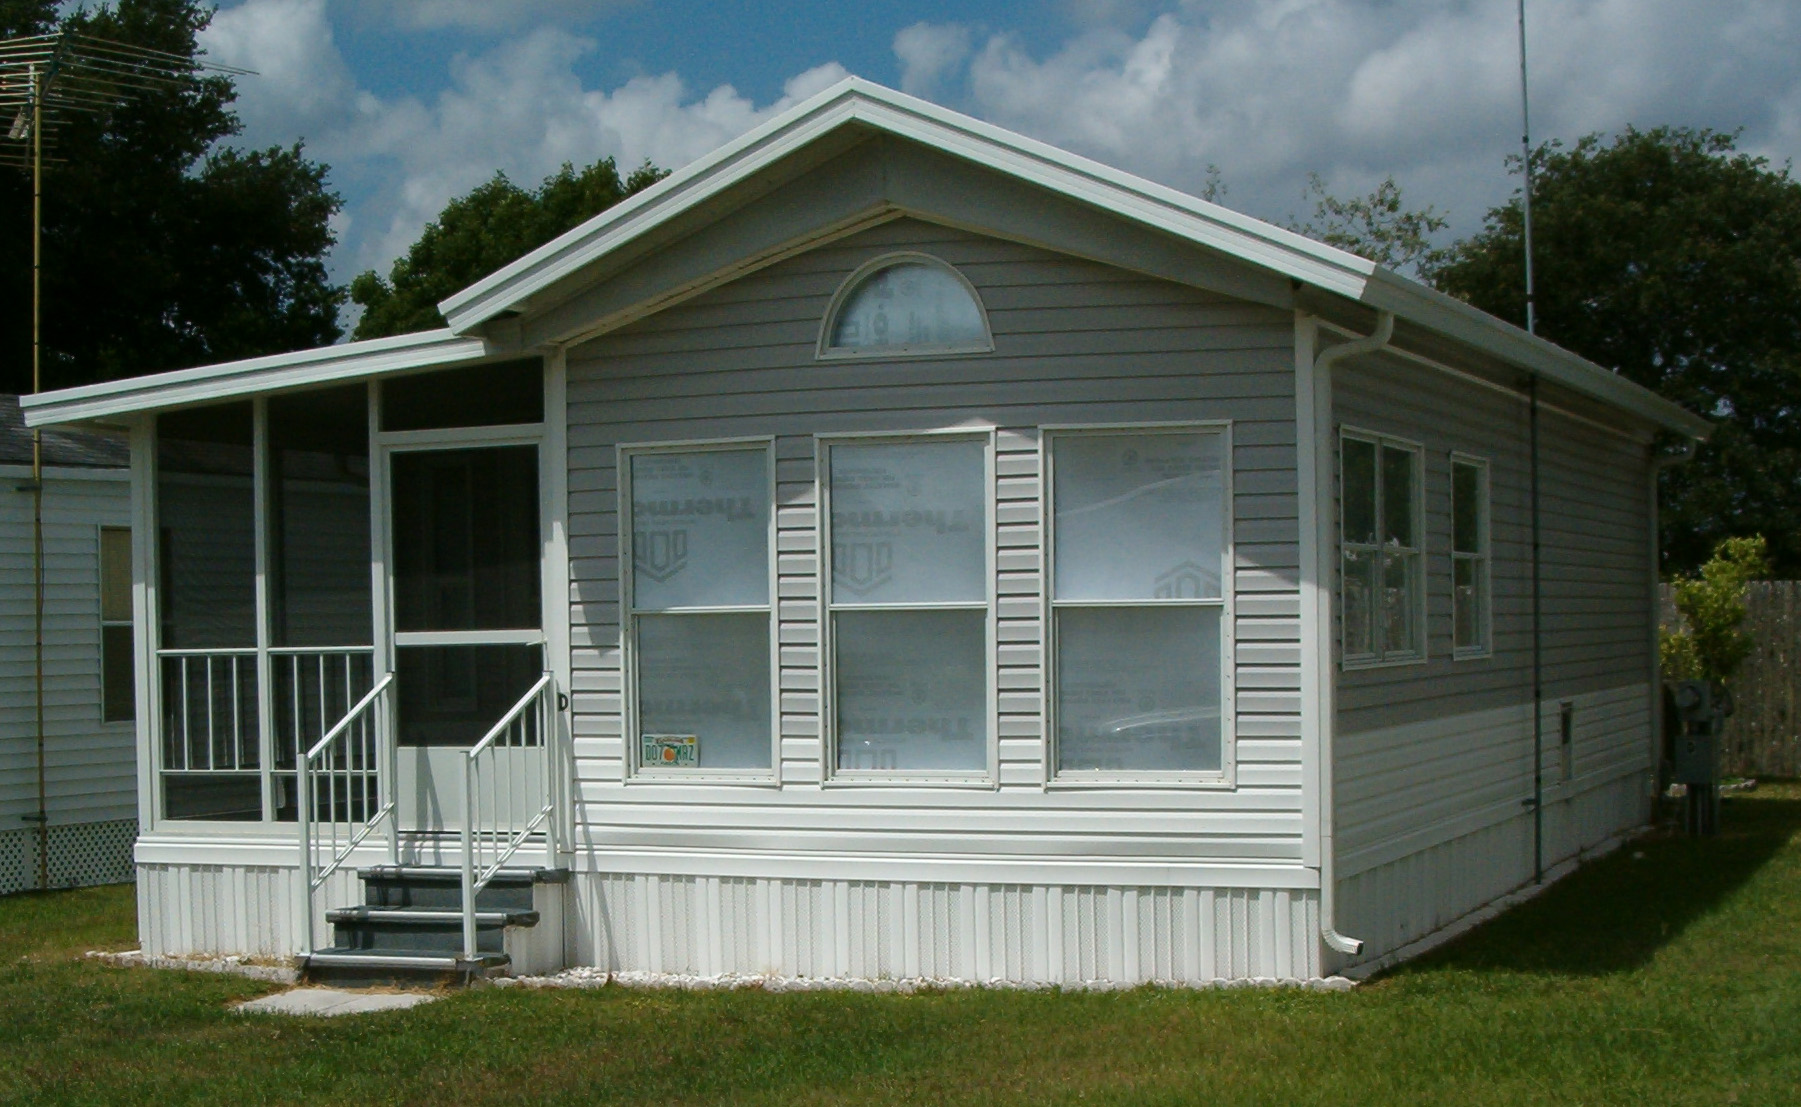 Mobile Homes for Sale and Rent to Own Mobiles Ft Myers and RV lot rent